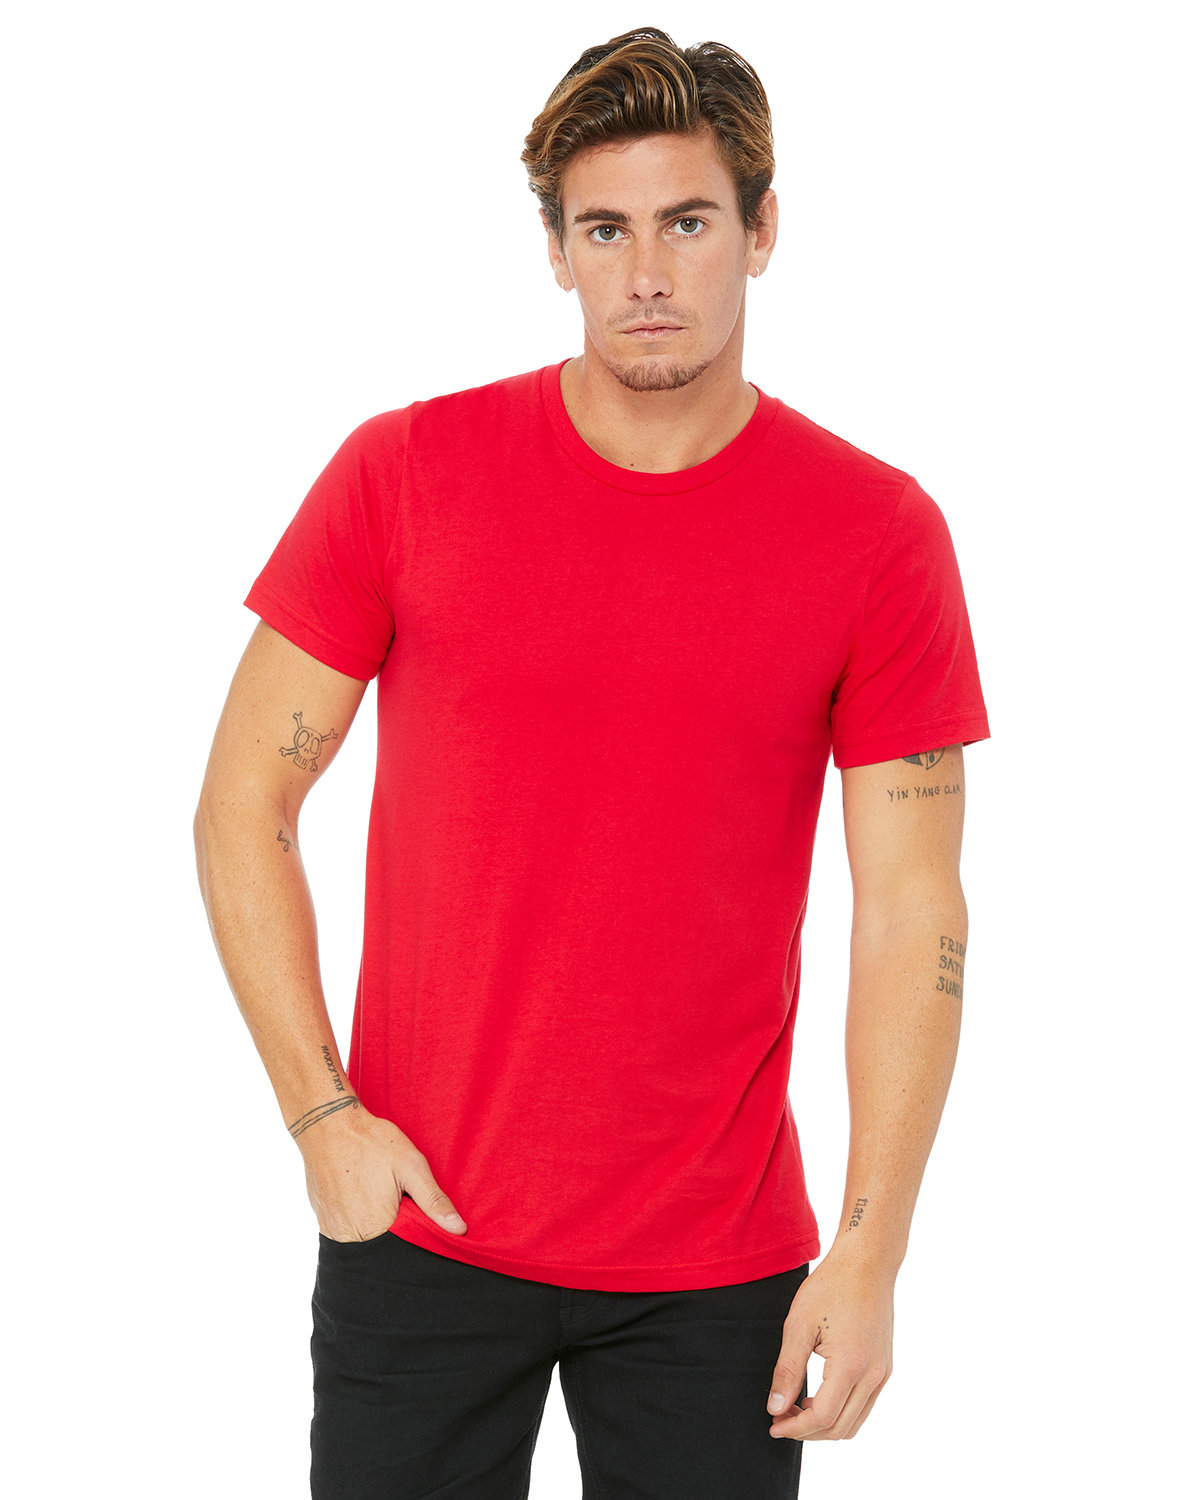 Bella + Canvas Unisex Made In The USA Jersey T-Shirt RED